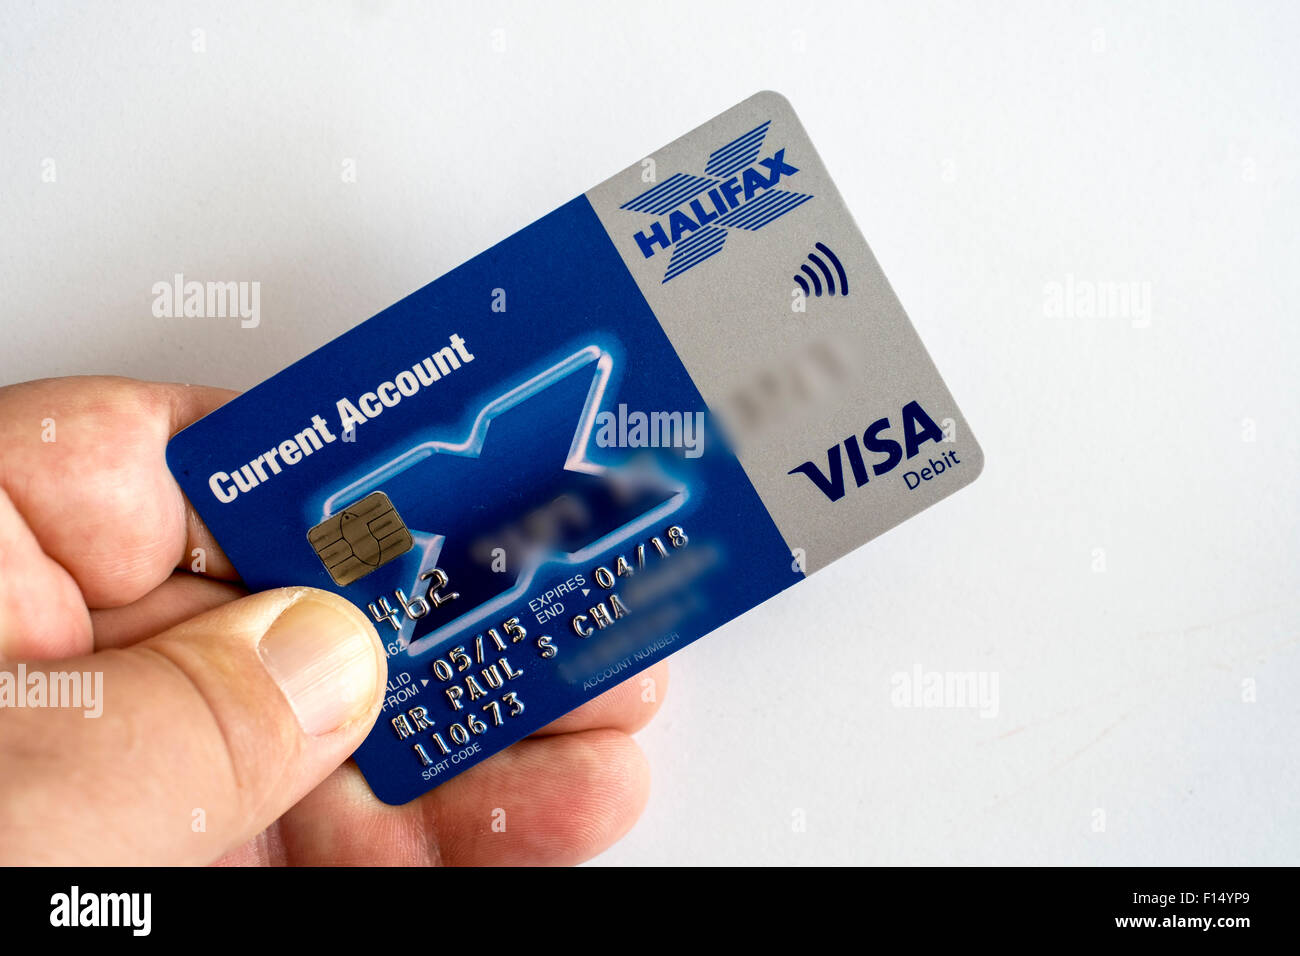 credit card and new bank card Learn how to use your new santander bank debit card or credit card with a security chip and enjoy an added layer of financial security.